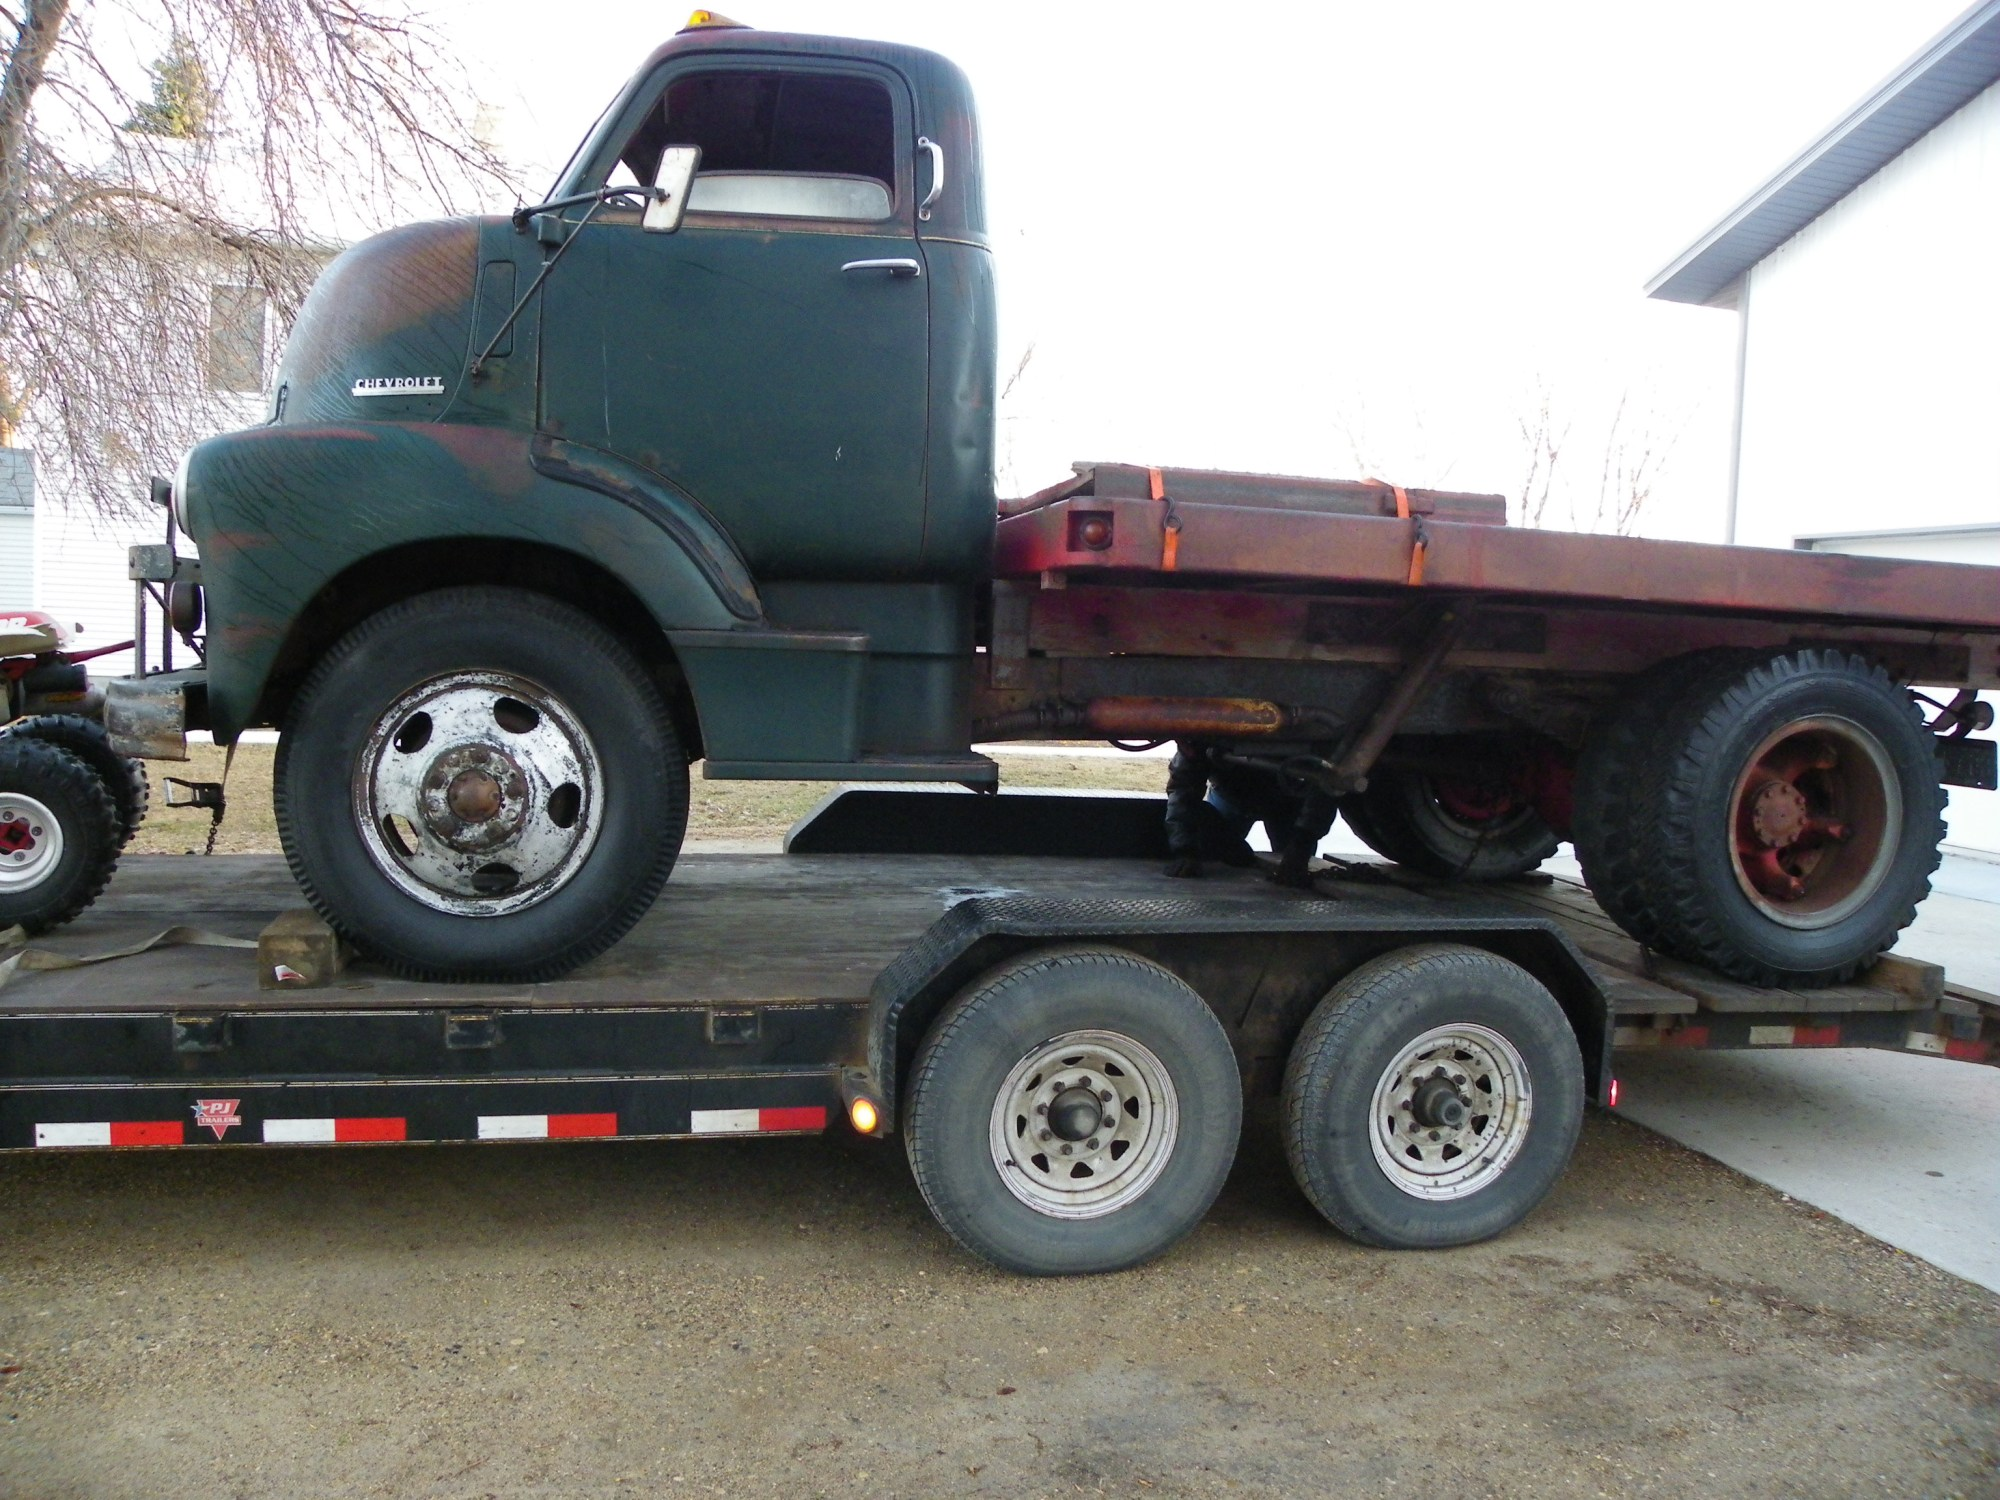 hight resolution of 1950 chevy truck for sale craigslist 1946 gmc truck craigslist autos post